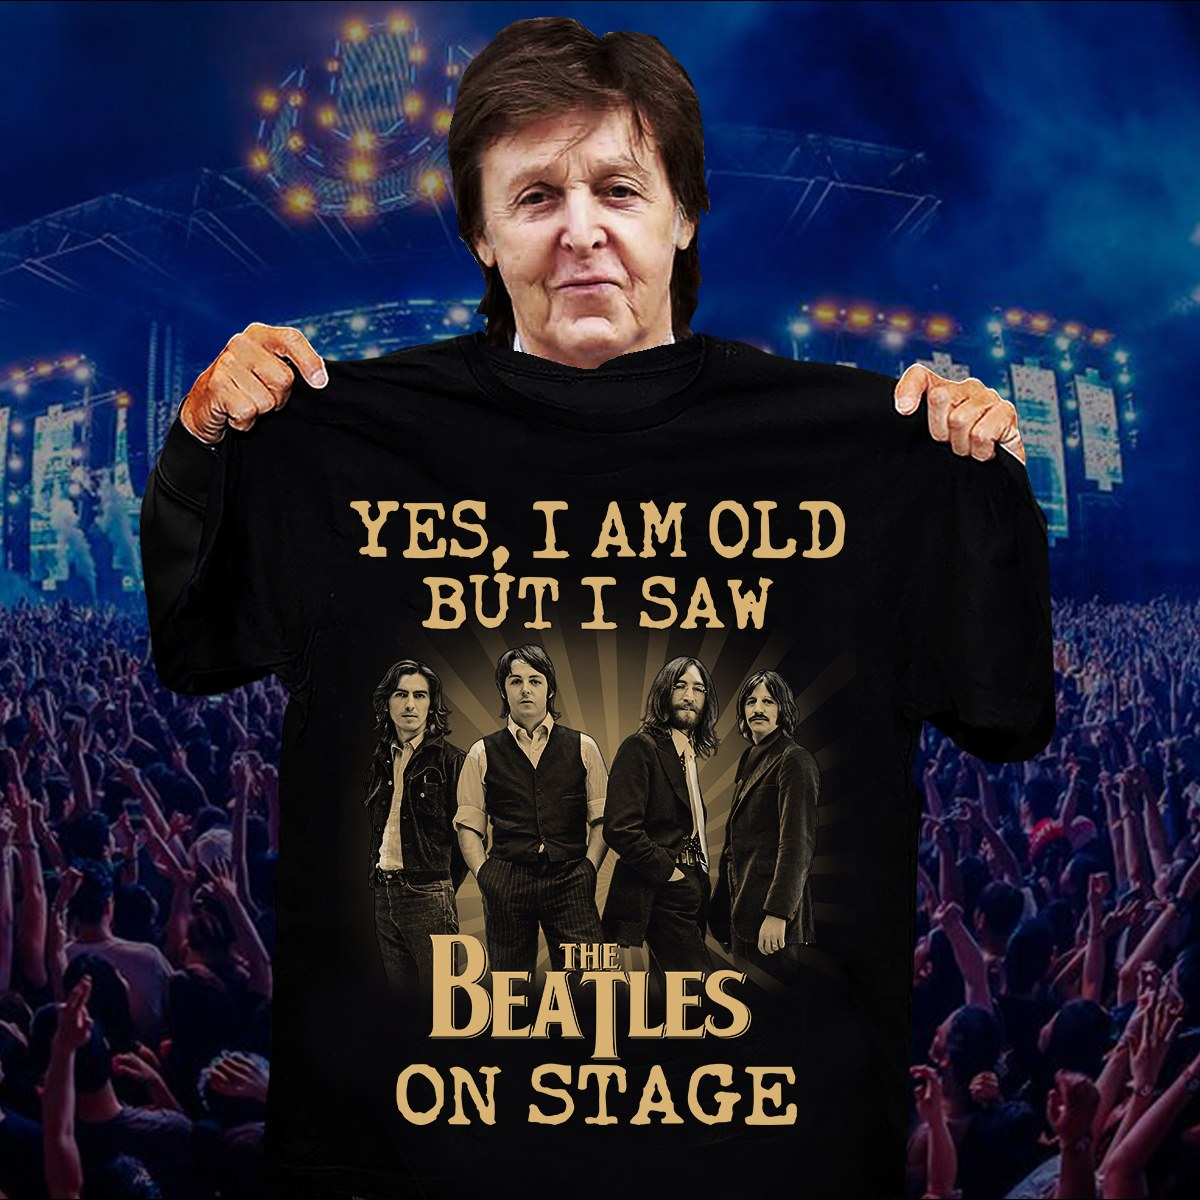 Yes I am old but I saw the beatles on stage shirt